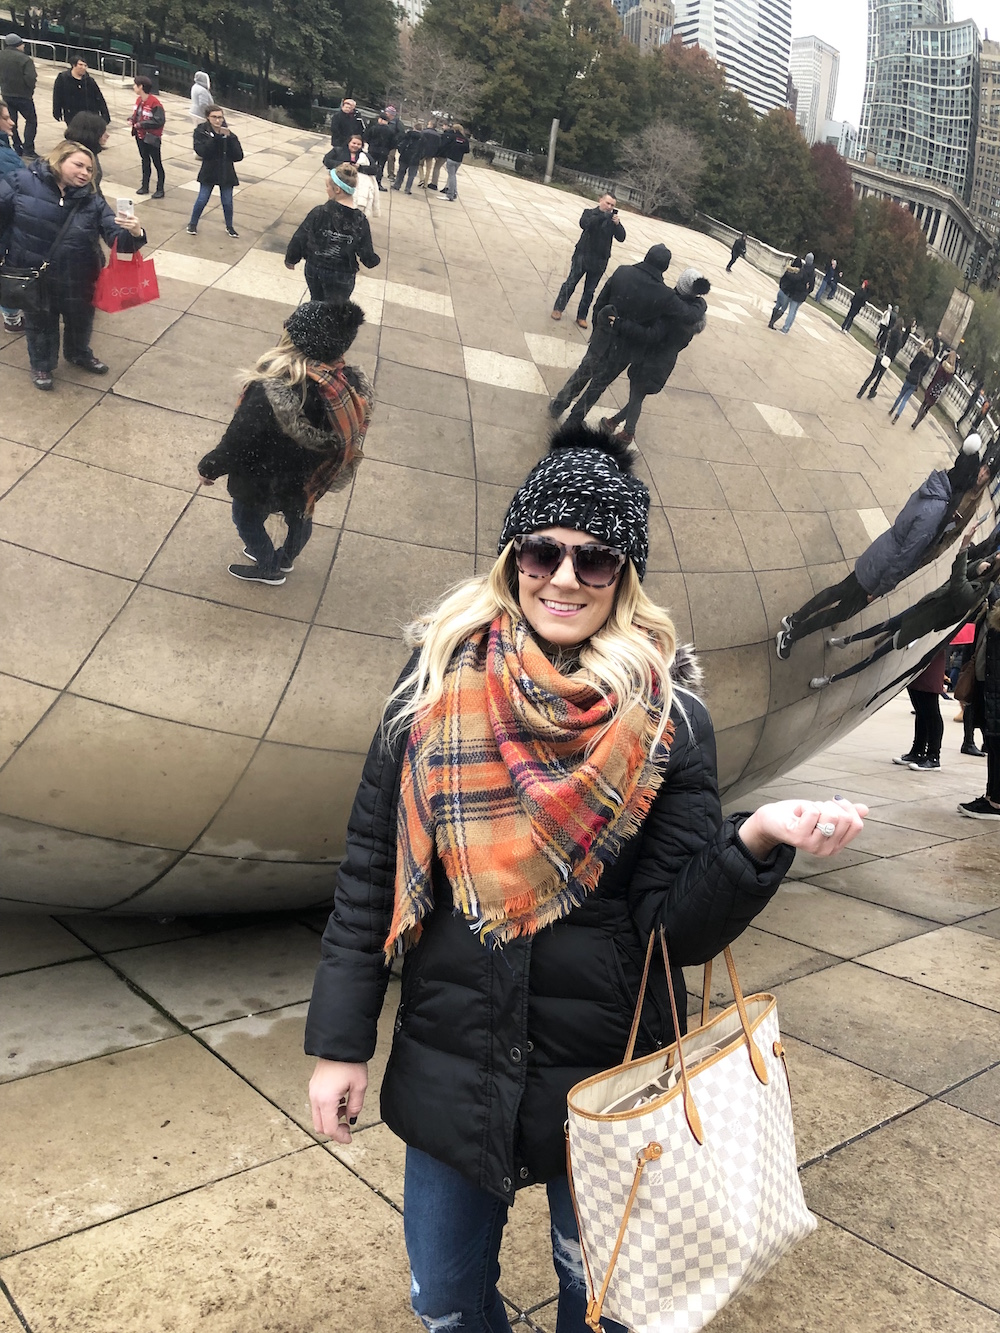 Visiting Millenium park is one of the Best things to do in Chicago during the holidays